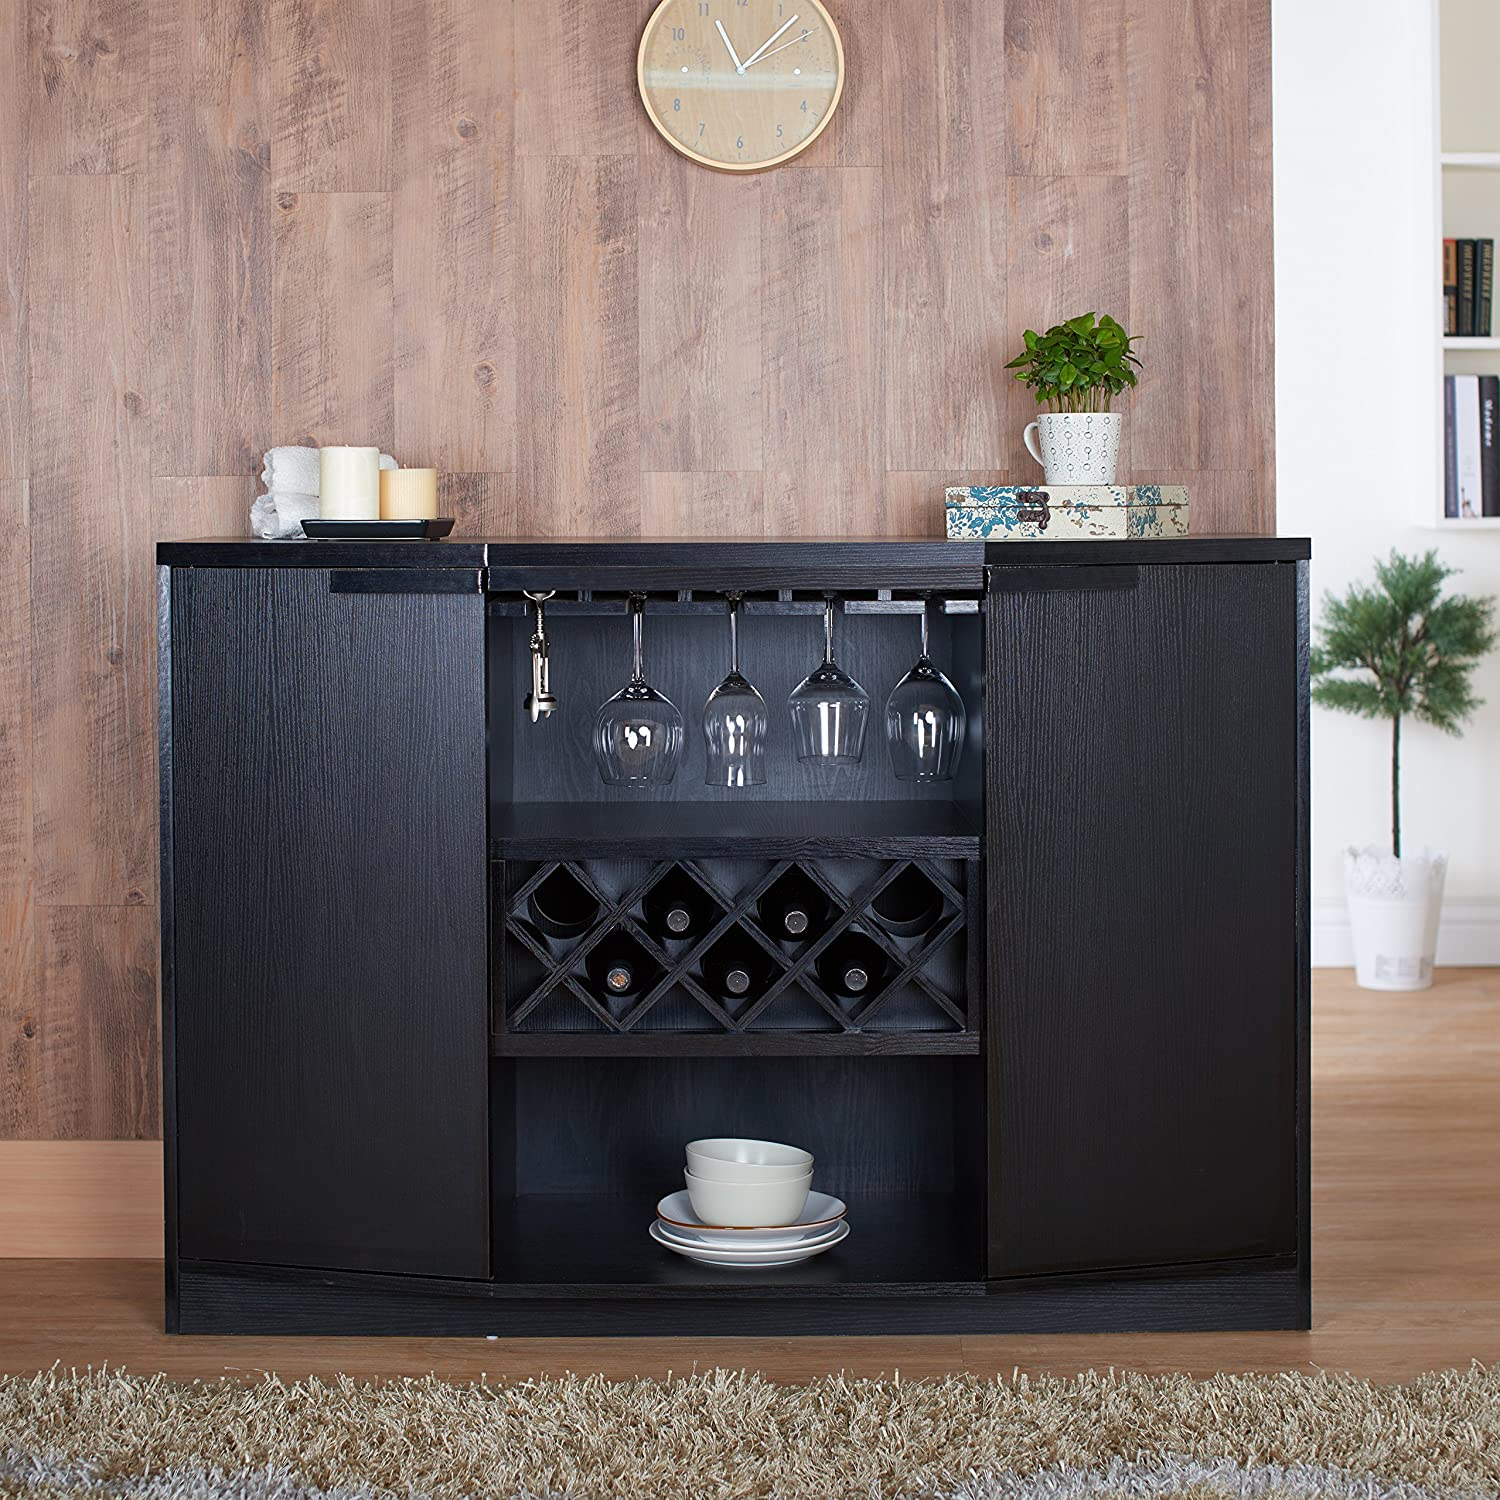 materials wax chic cupboard corona frame furniture single and types wood pin with cabinet pine inspirations wine rack space design drawers